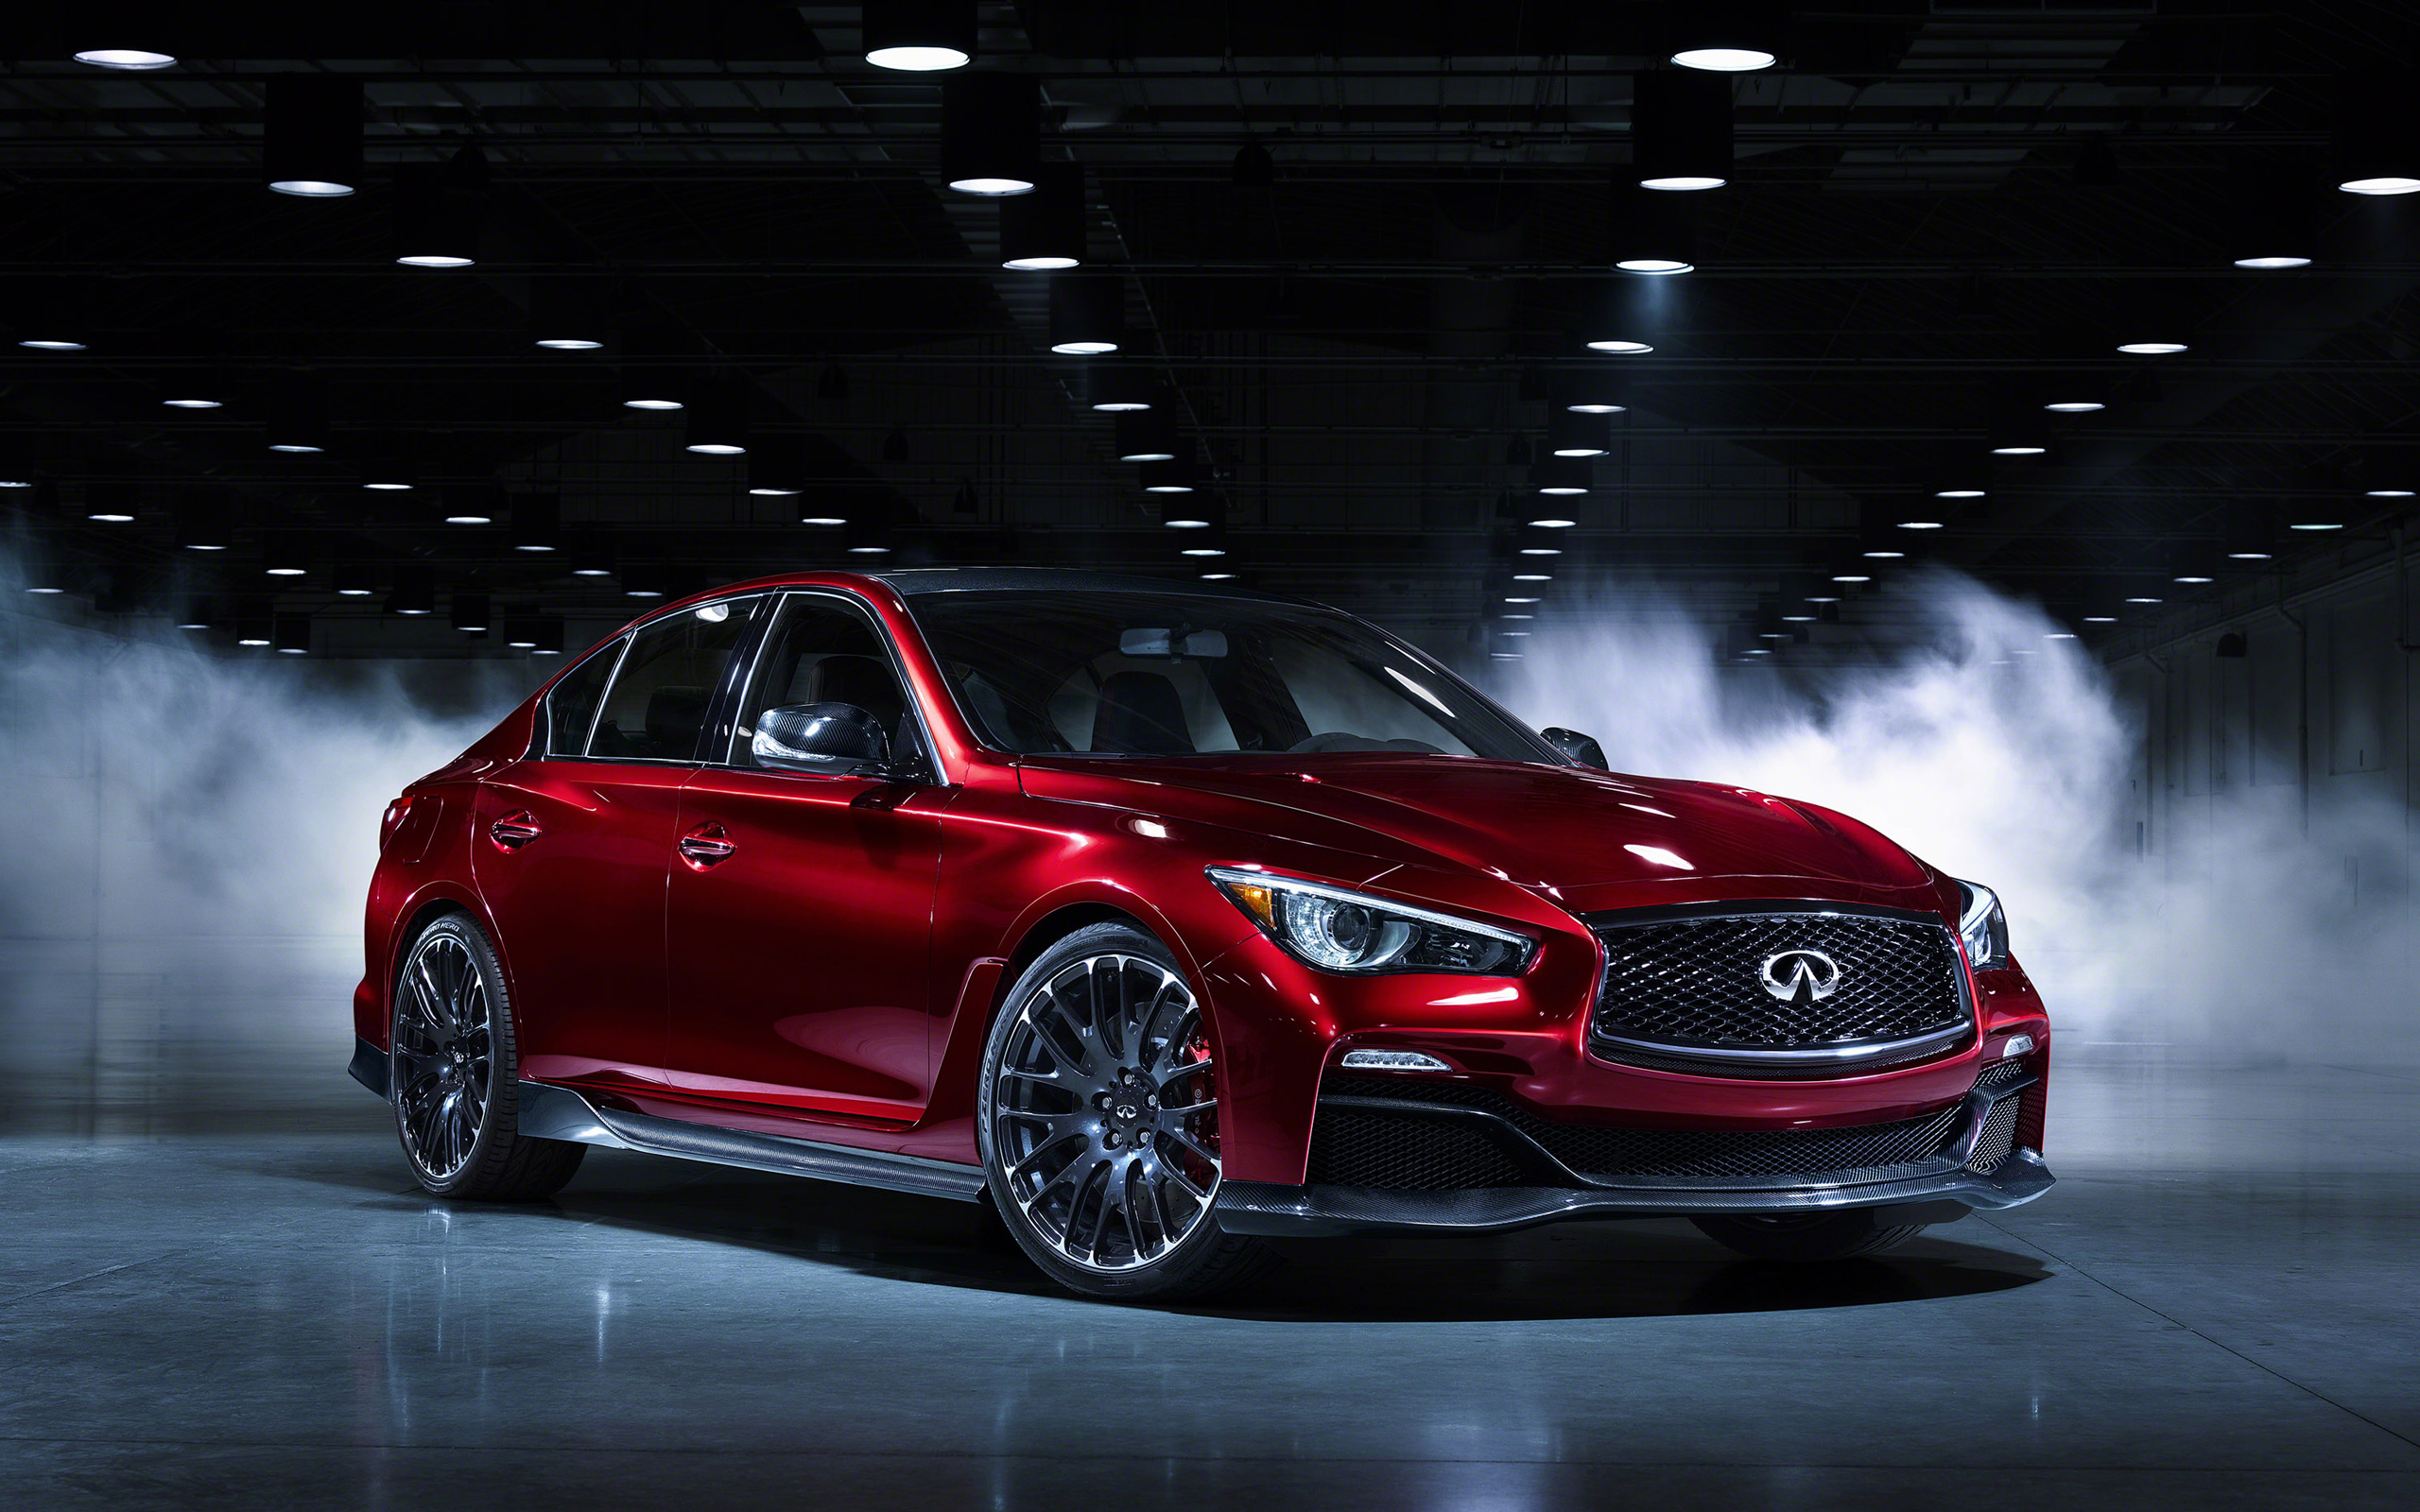 2014 Infiniti Q50 Eau Rouge Concept Wallpaper Hd Car